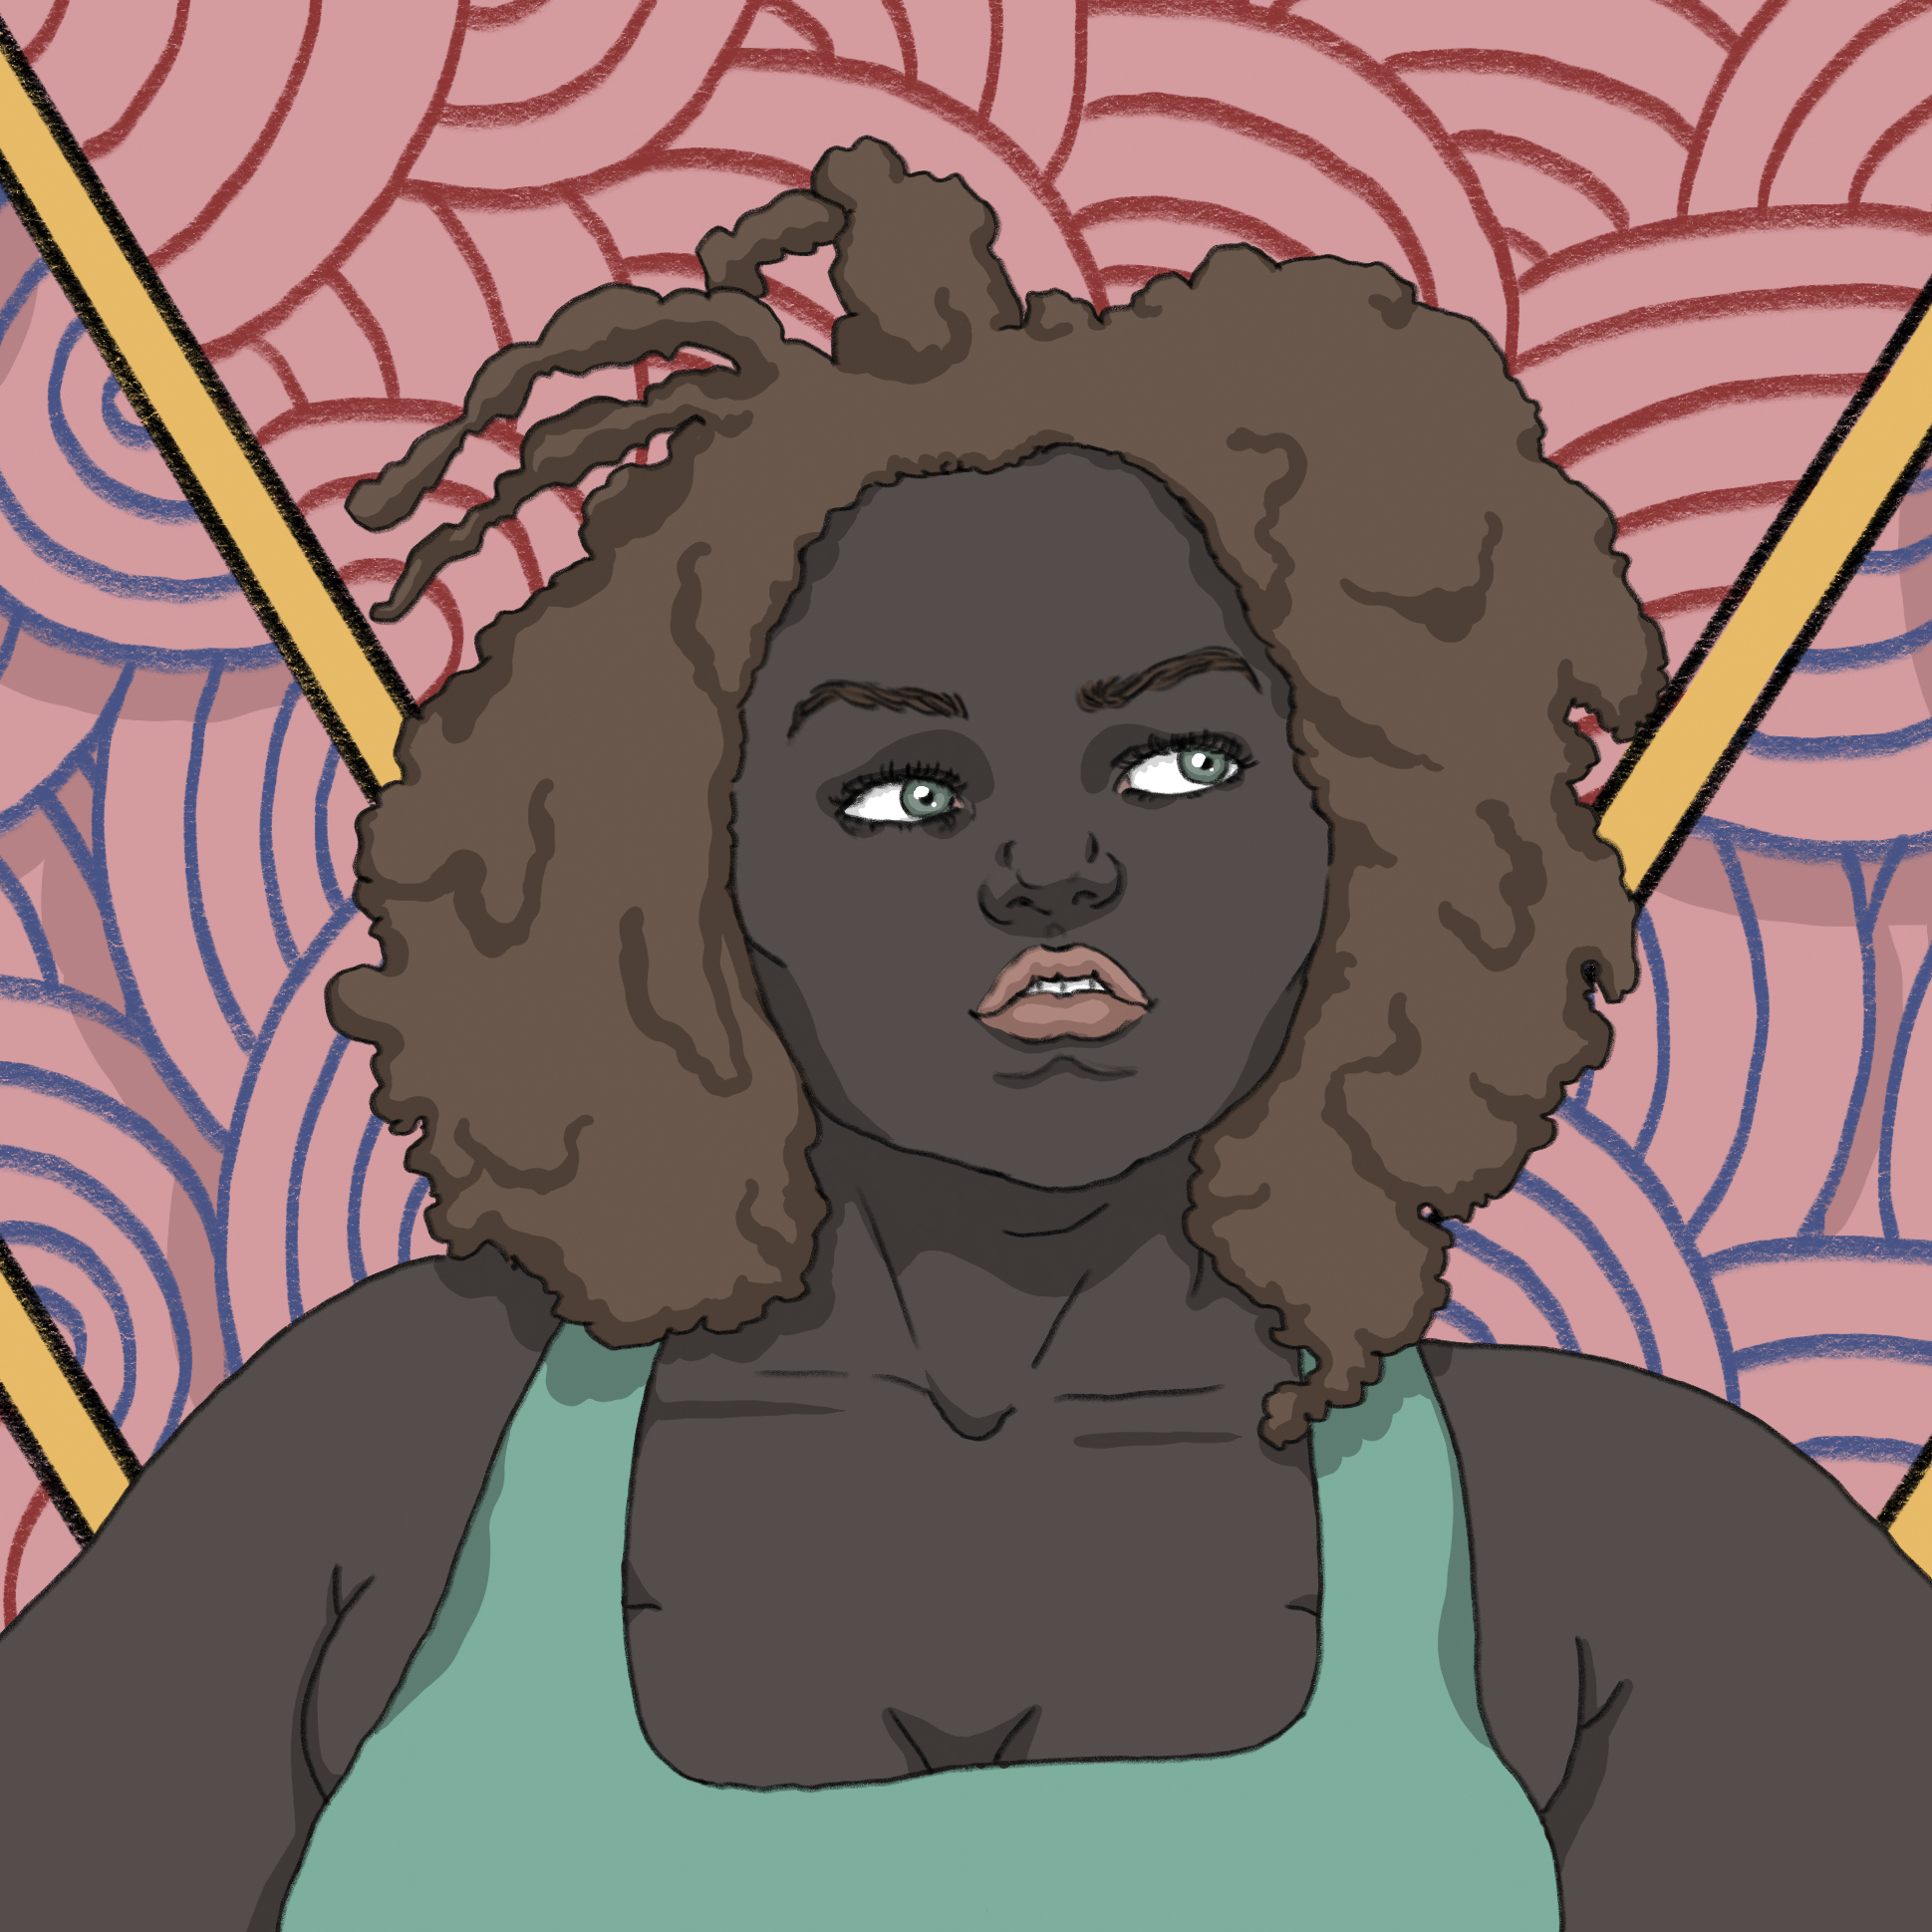 Illustration portrait detail of a black woman with dark curly hair and fat appearance.